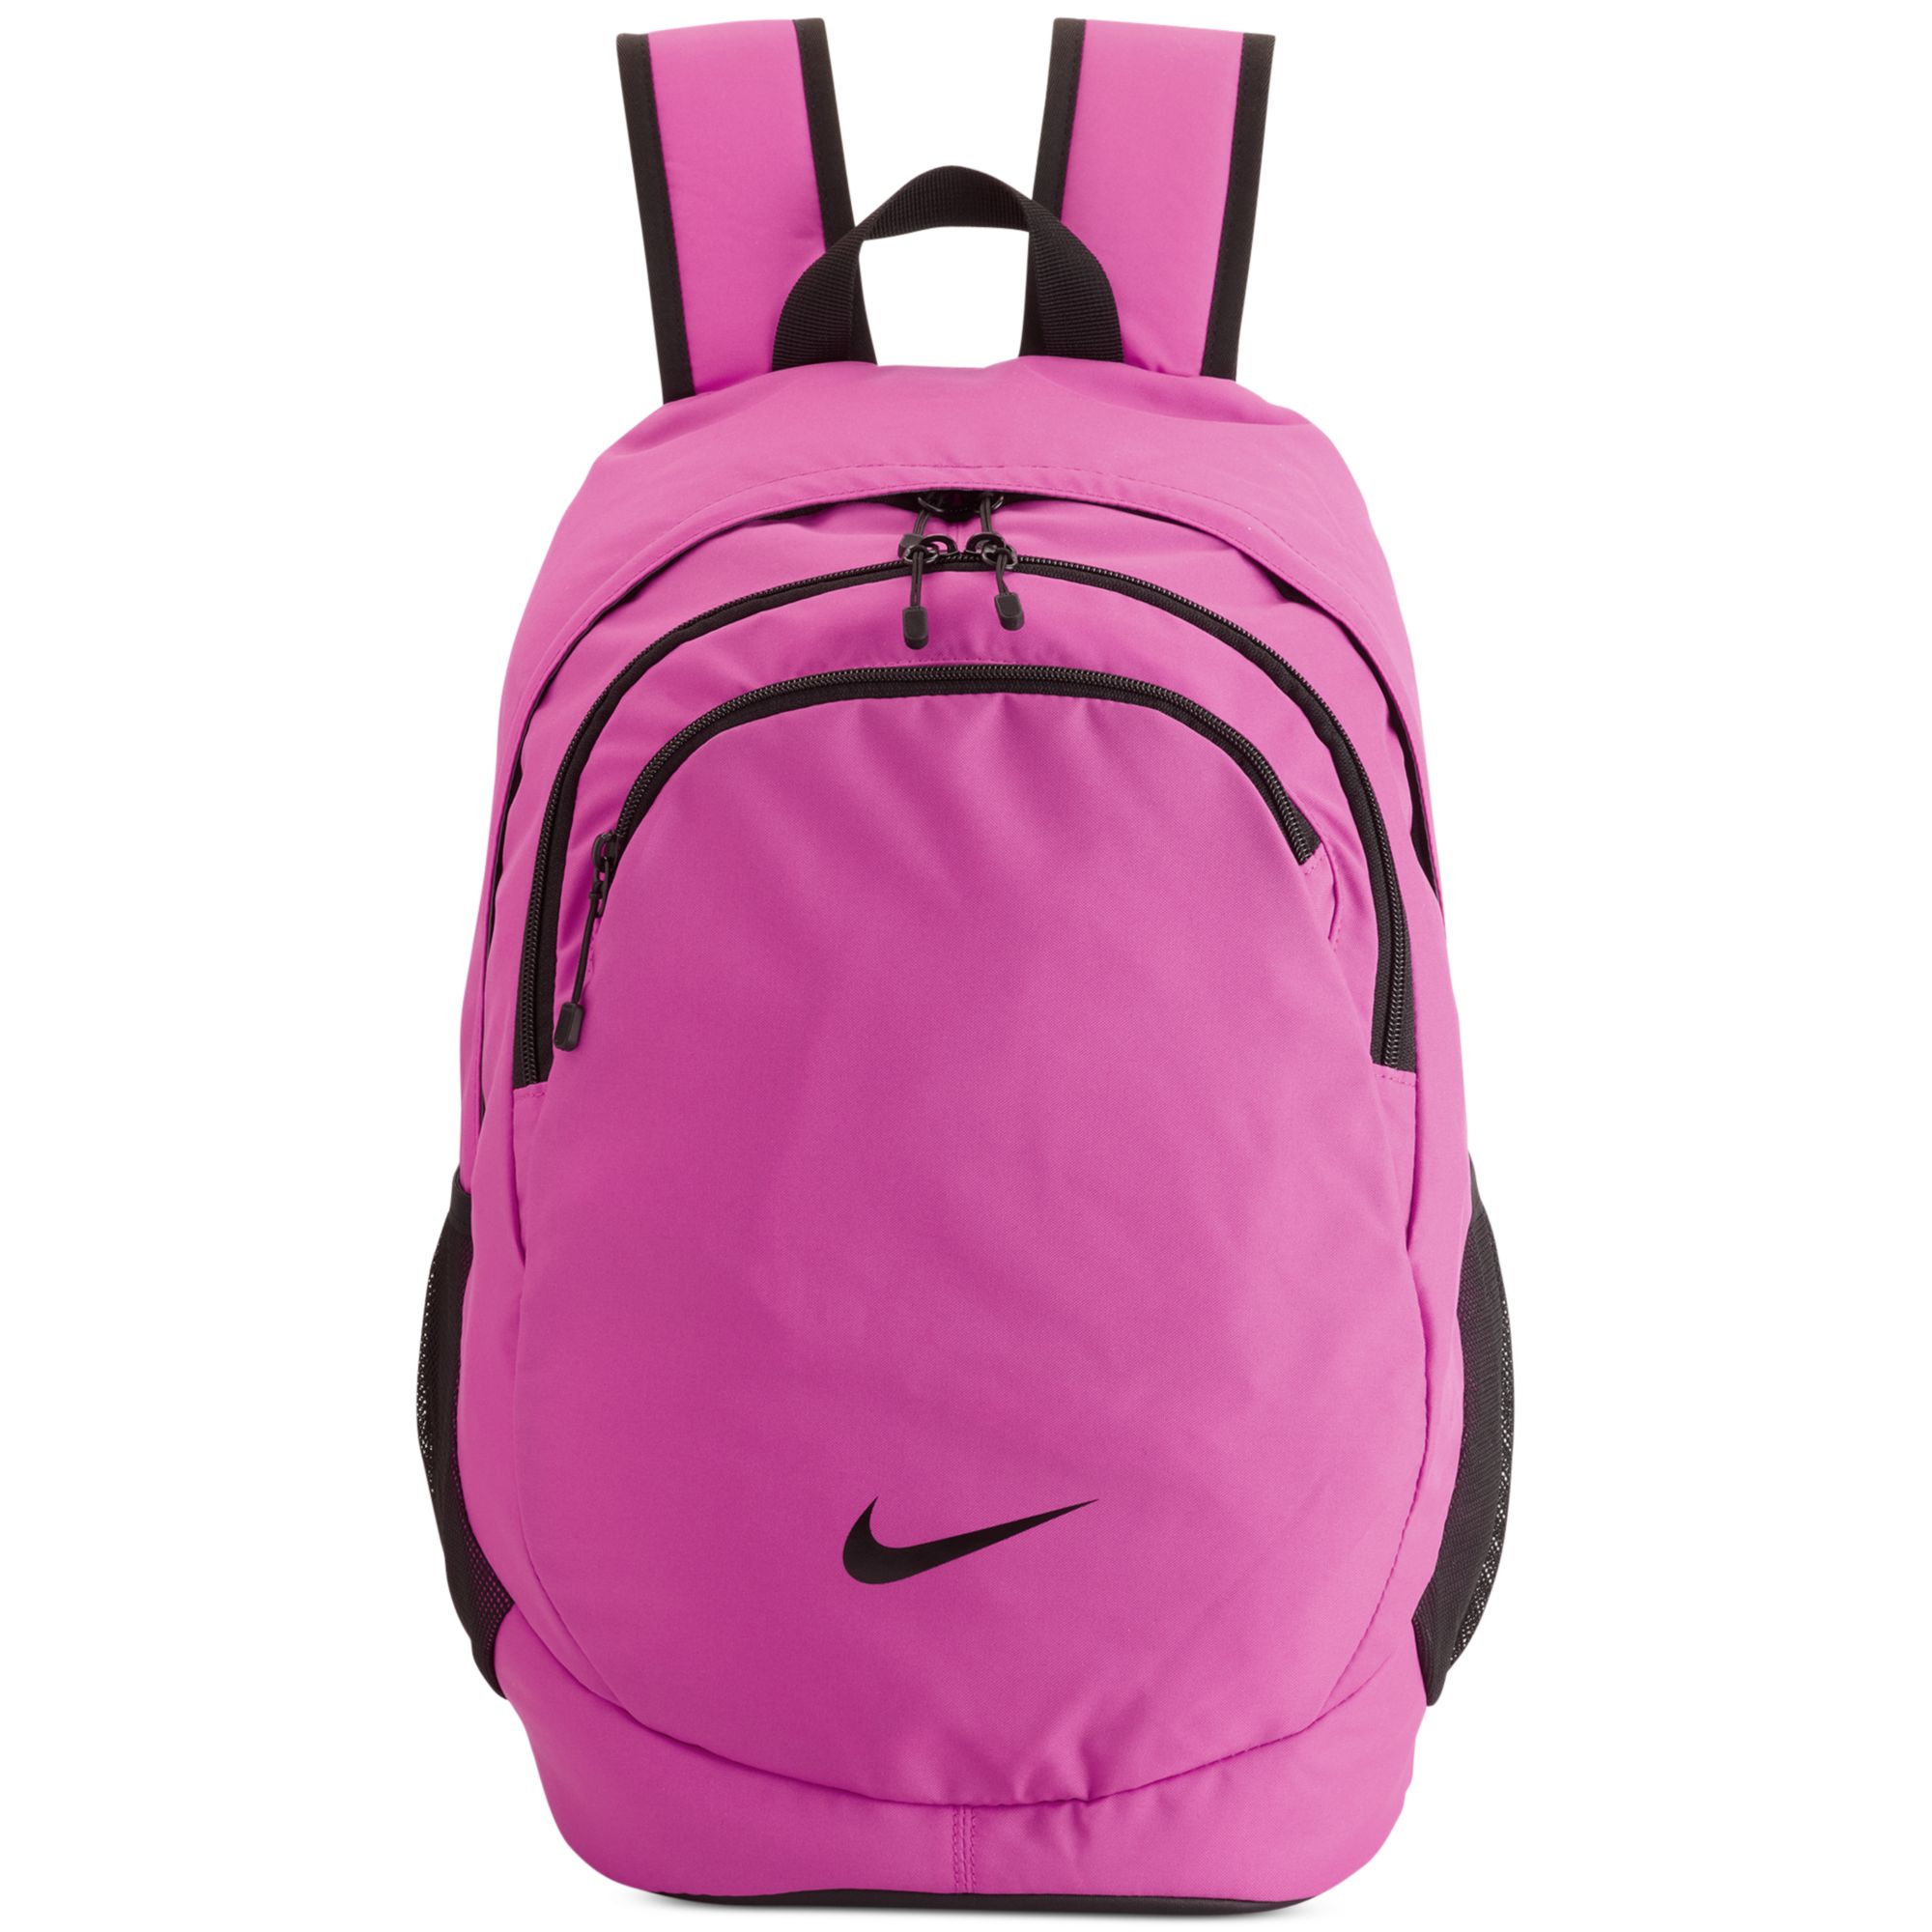 8d0e3e8605 Lyst - Nike Team Training Backpack in Pink